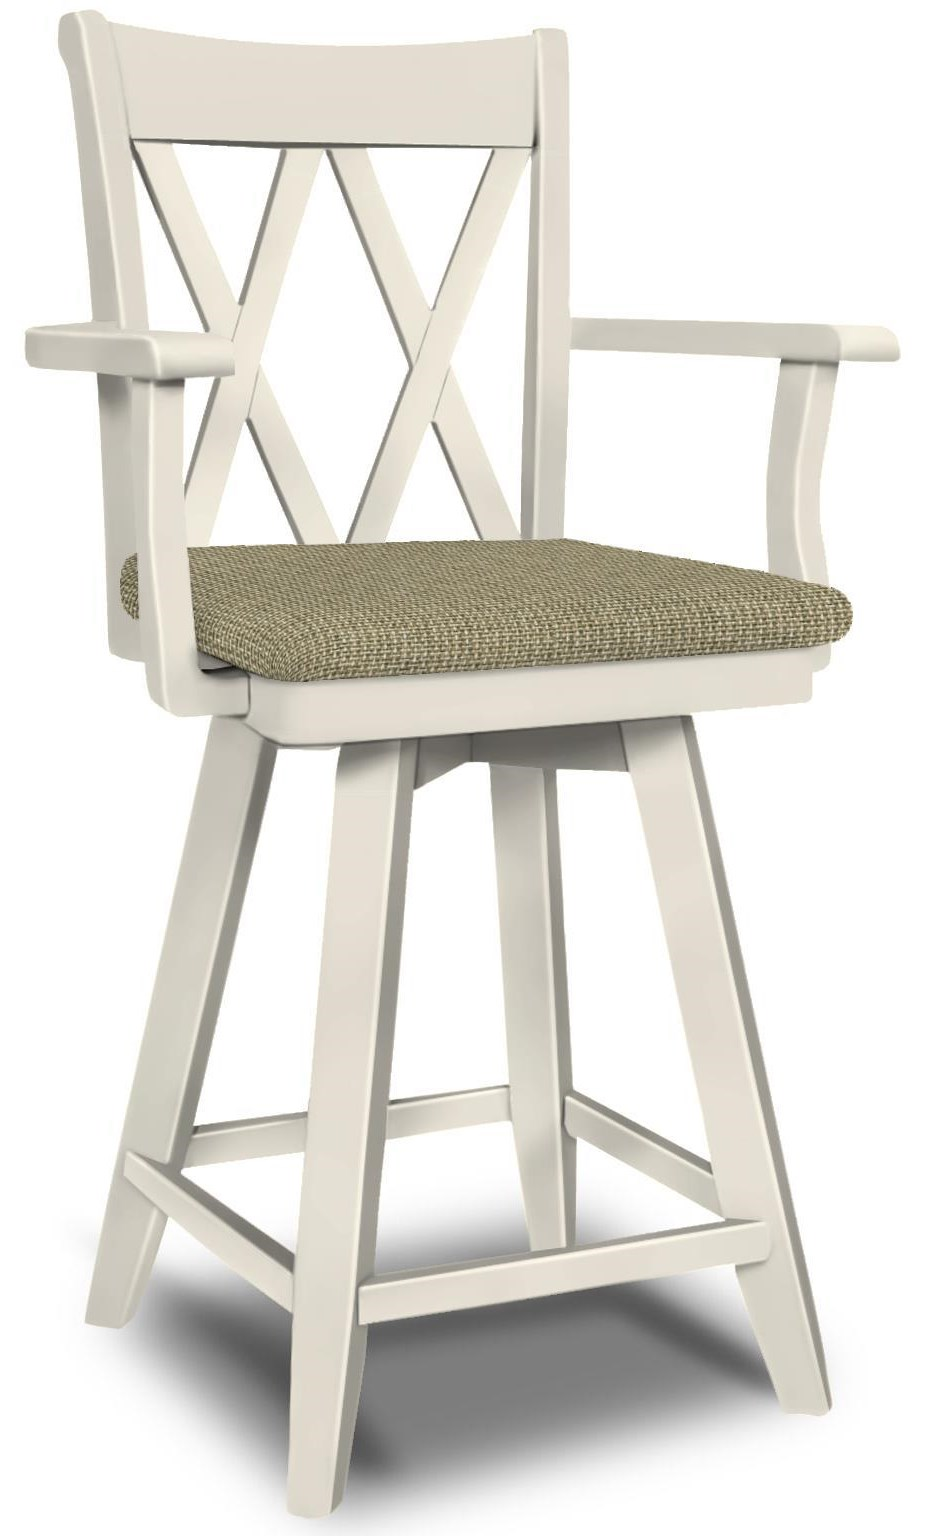 SELECT Dining Swivel Bar Stool with Arms by John Thomas at Baer's Furniture